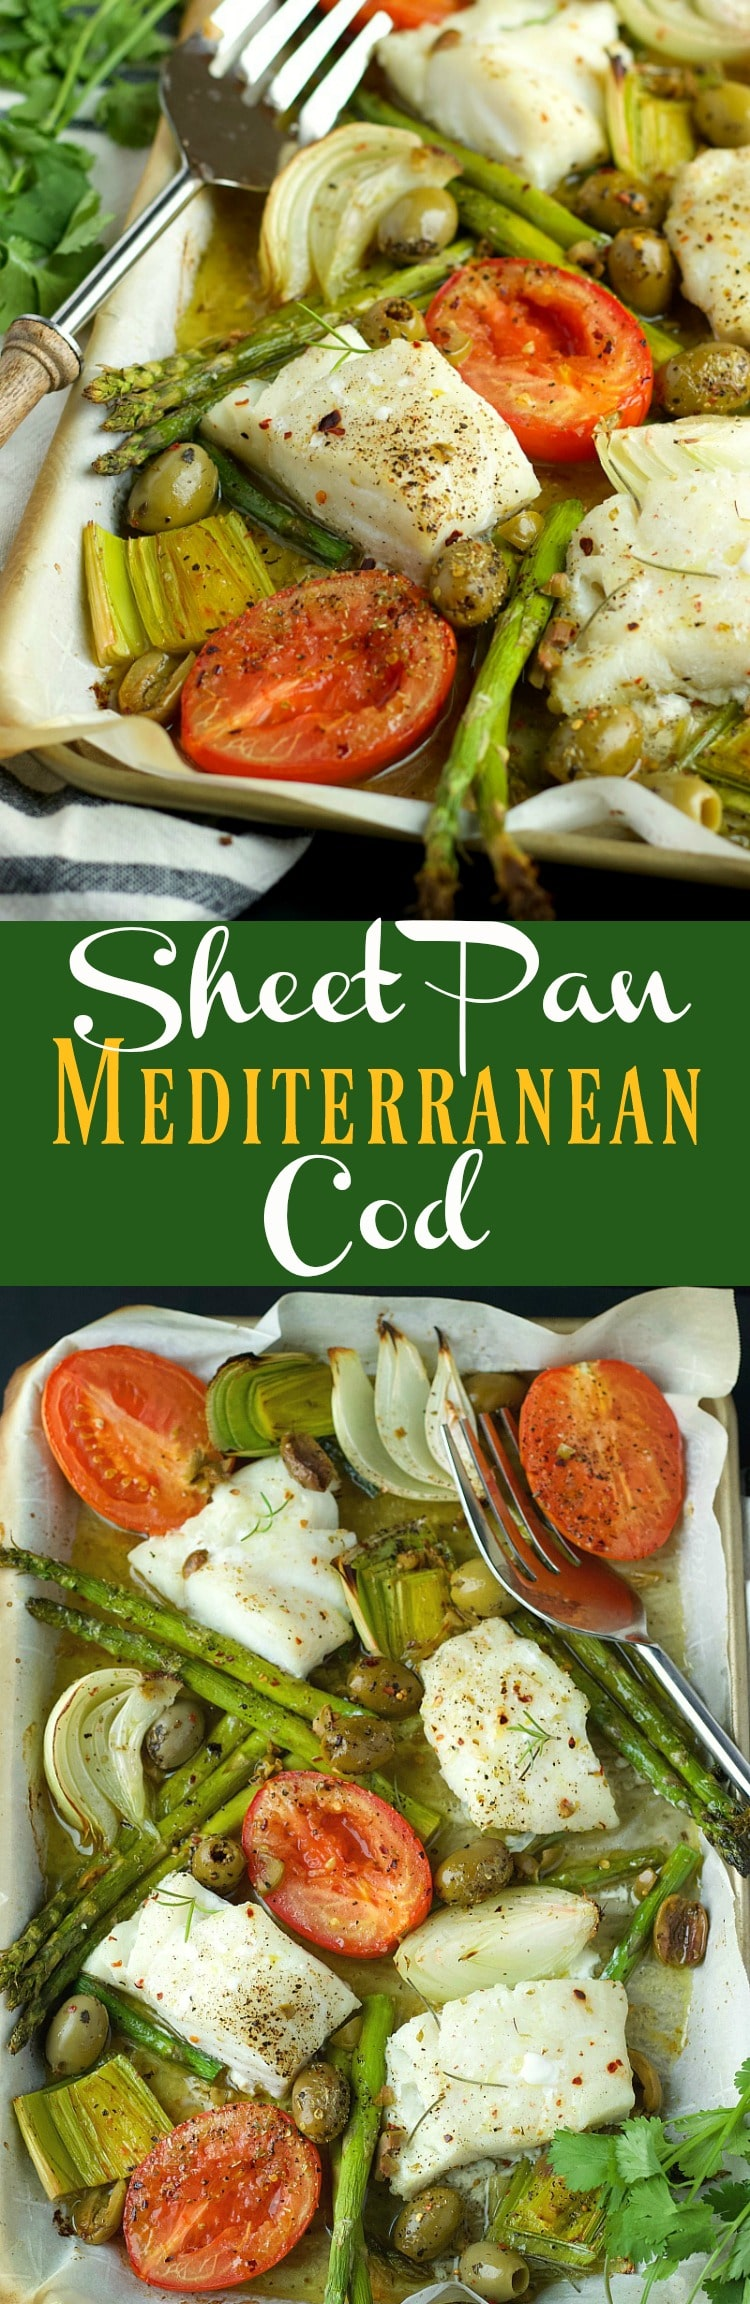 This Sheet Pan Mediterranean Cod is a quick and easy 20 minute hands-free dinner, loaded with veggies and perfect for the week.